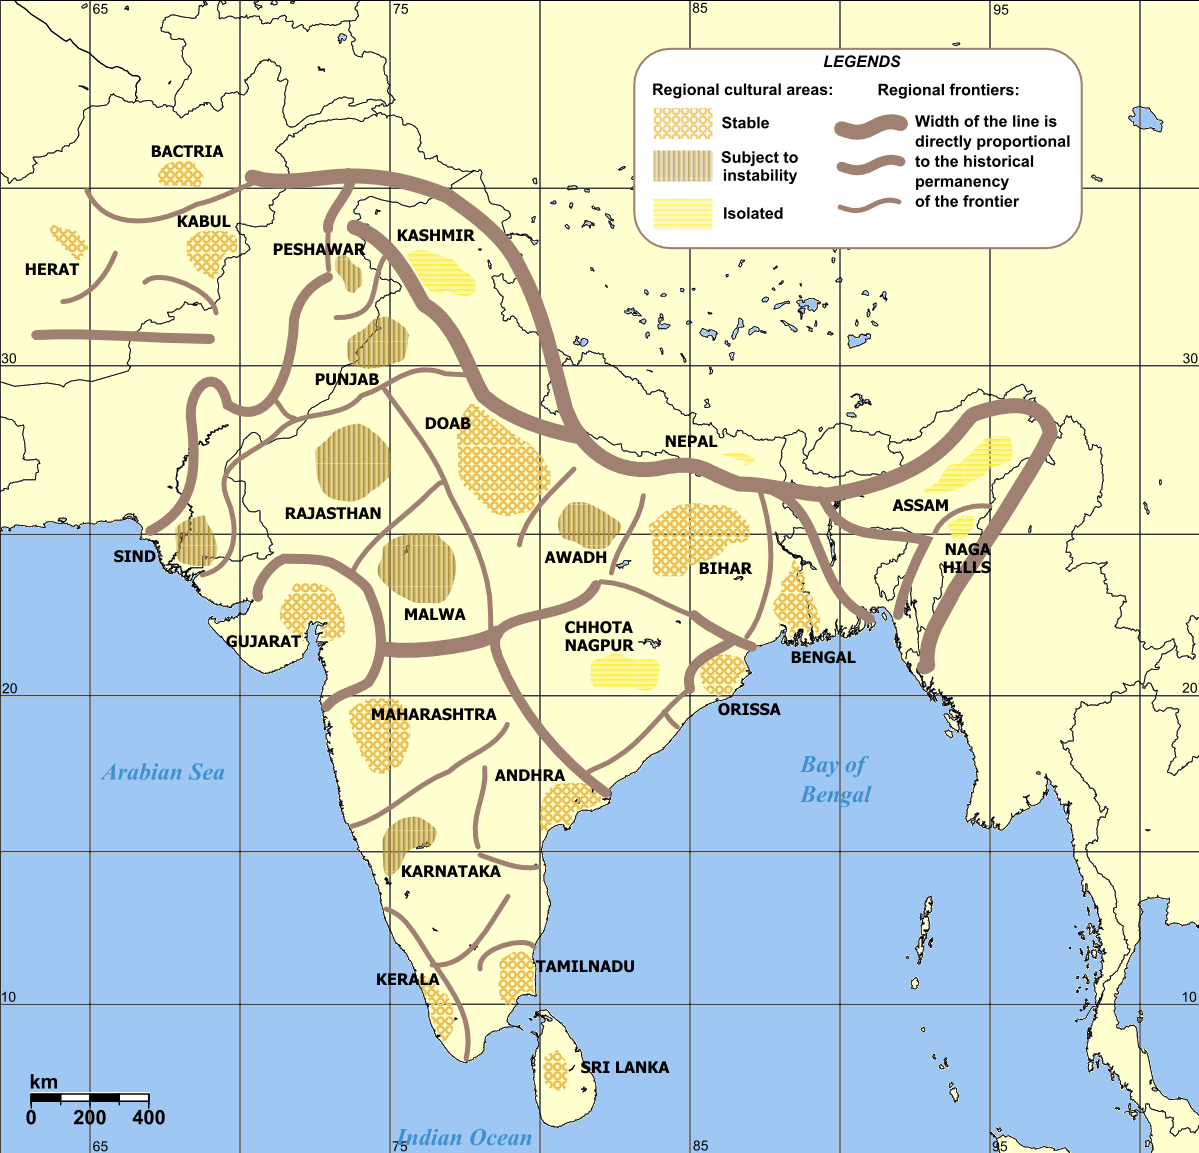 https://i1.wp.com/upload.wikimedia.org/wikipedia/commons/1/1d/Cultural_regional_areas_of_India.png